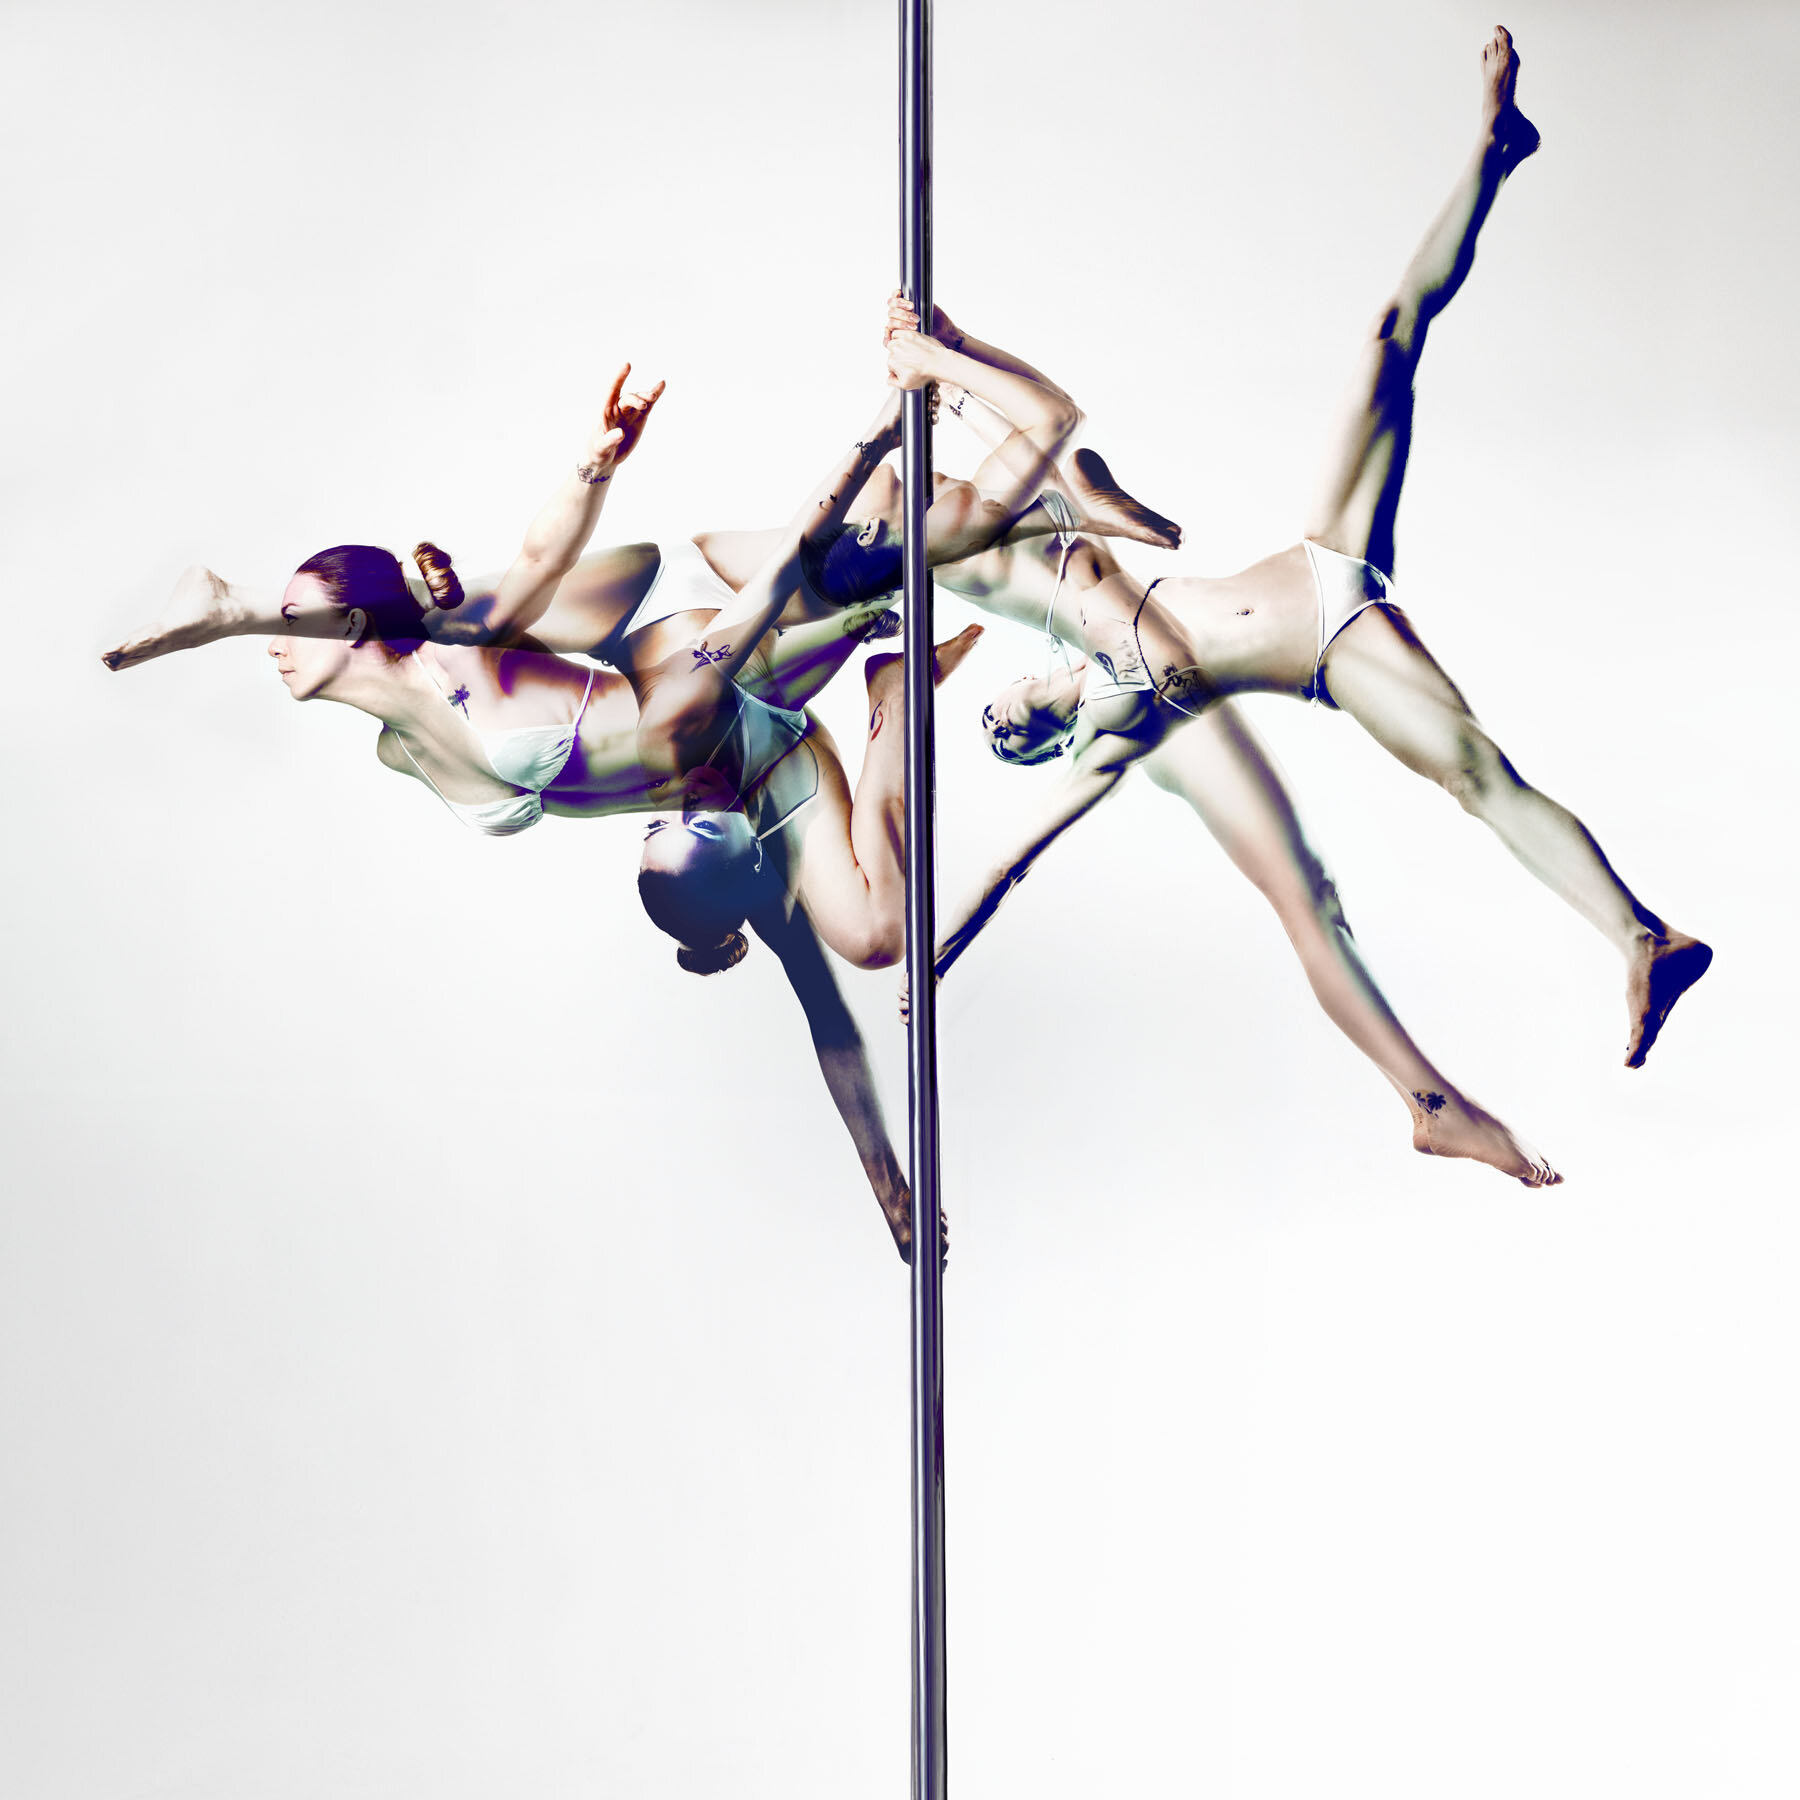 a pole dancer montage.jpg